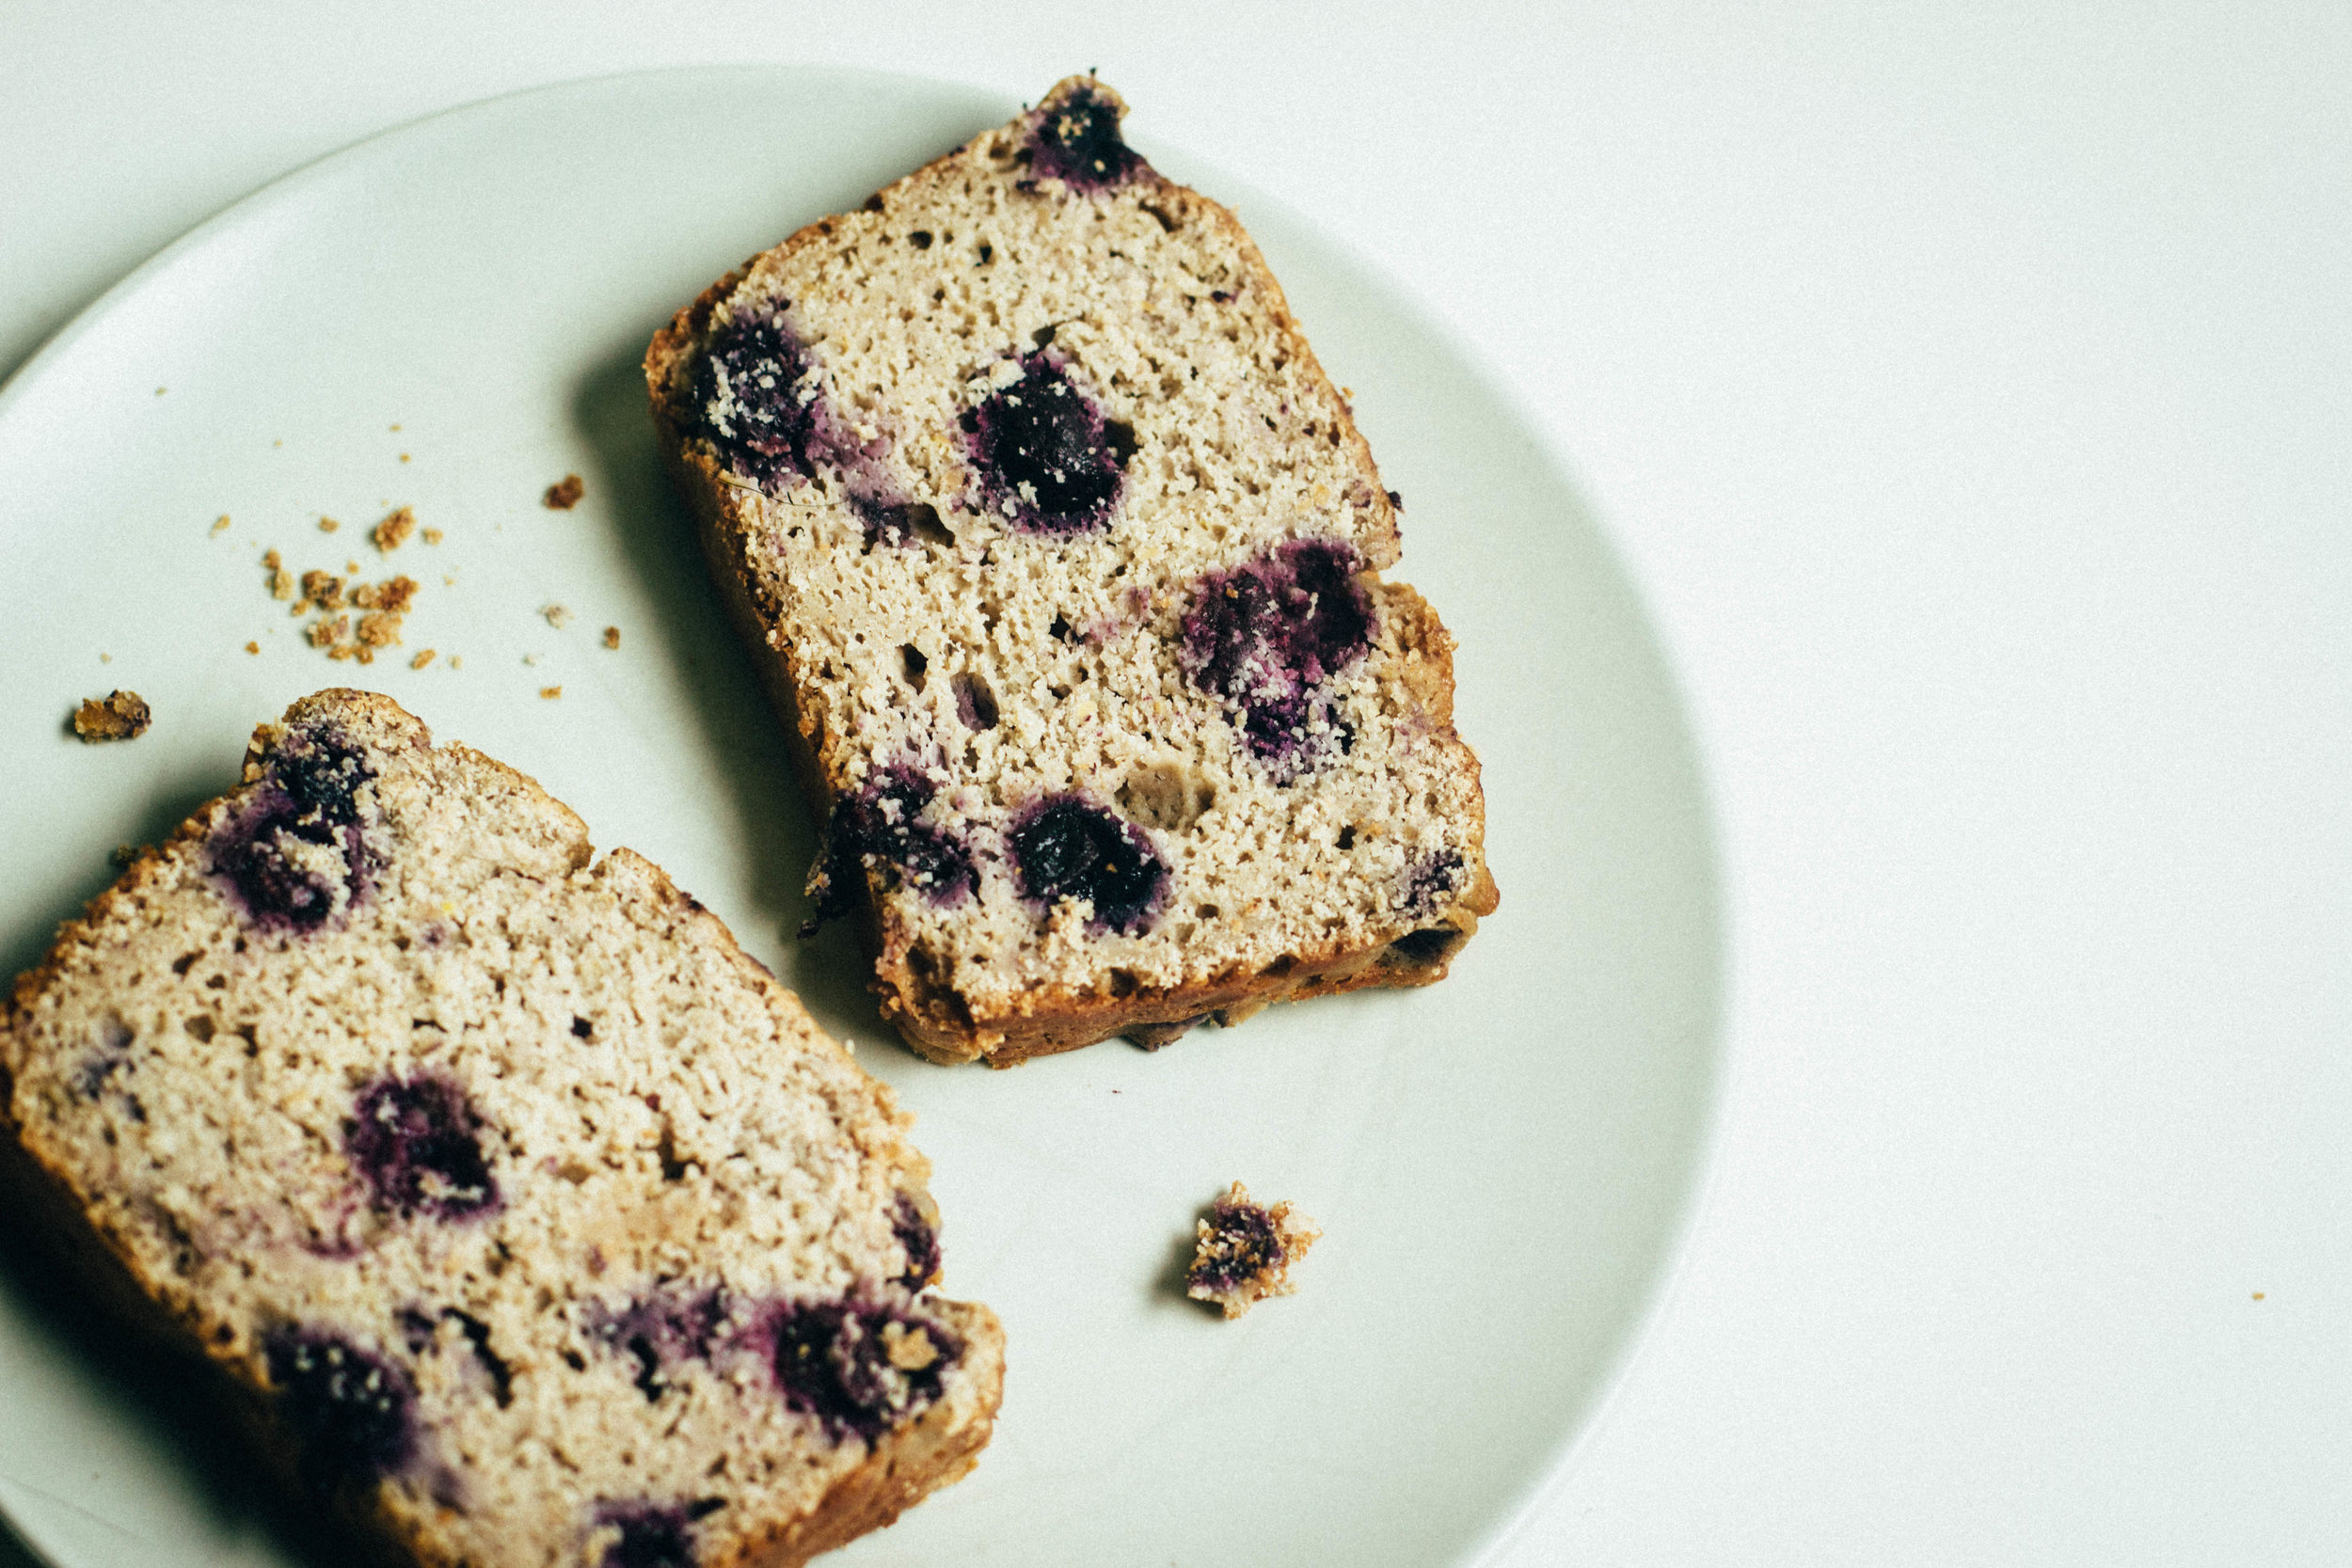 nutmeg and pear | gluten free + whole grain lemon-blueberry loaf cake (refined sugar free + dairy free easily)